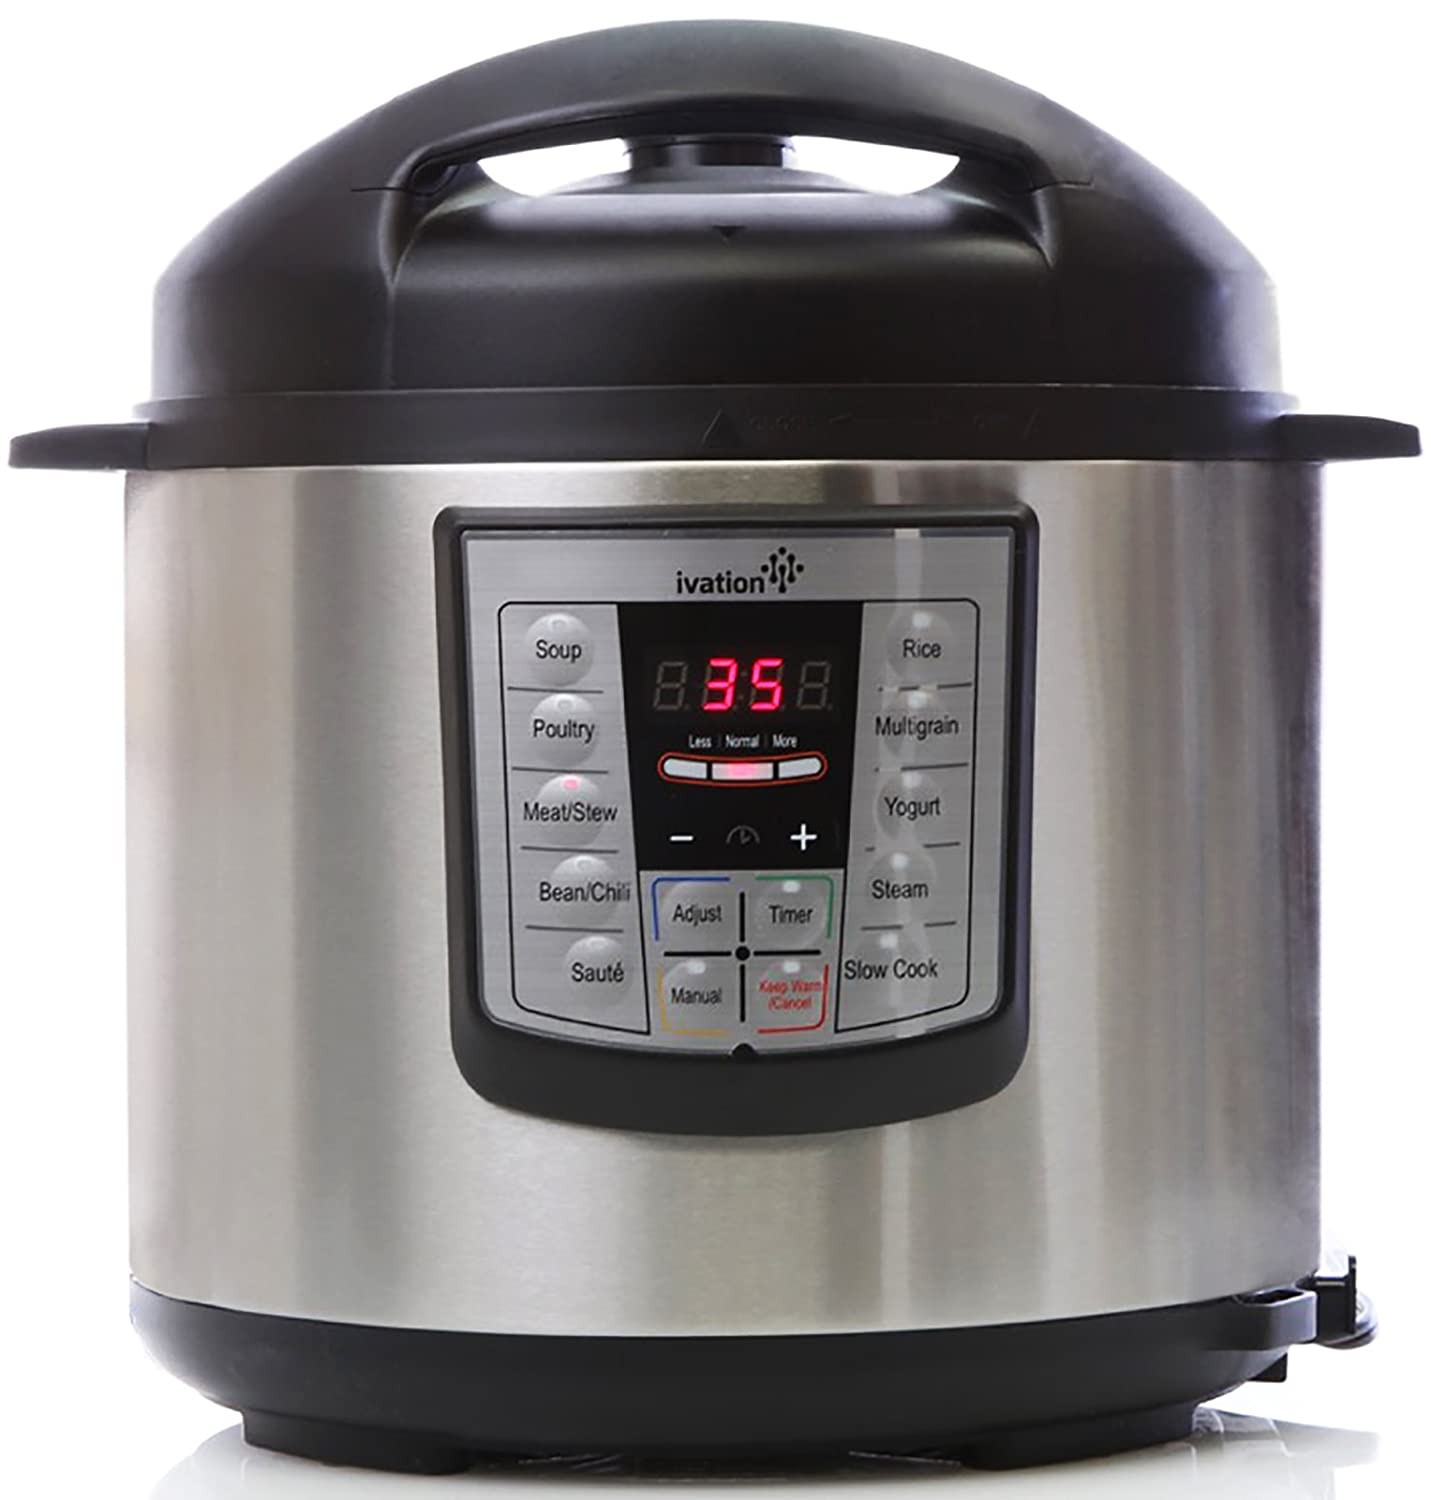 Ivation 7-In-1 Programmable Multi-Function Electric Pressure Cooker; Steamer, Slow Cooker, Rice Cooker; High Grade Stainless Steel 6.3Q Inner Pot; 11 Preset Cooking Styles; 1000W Power